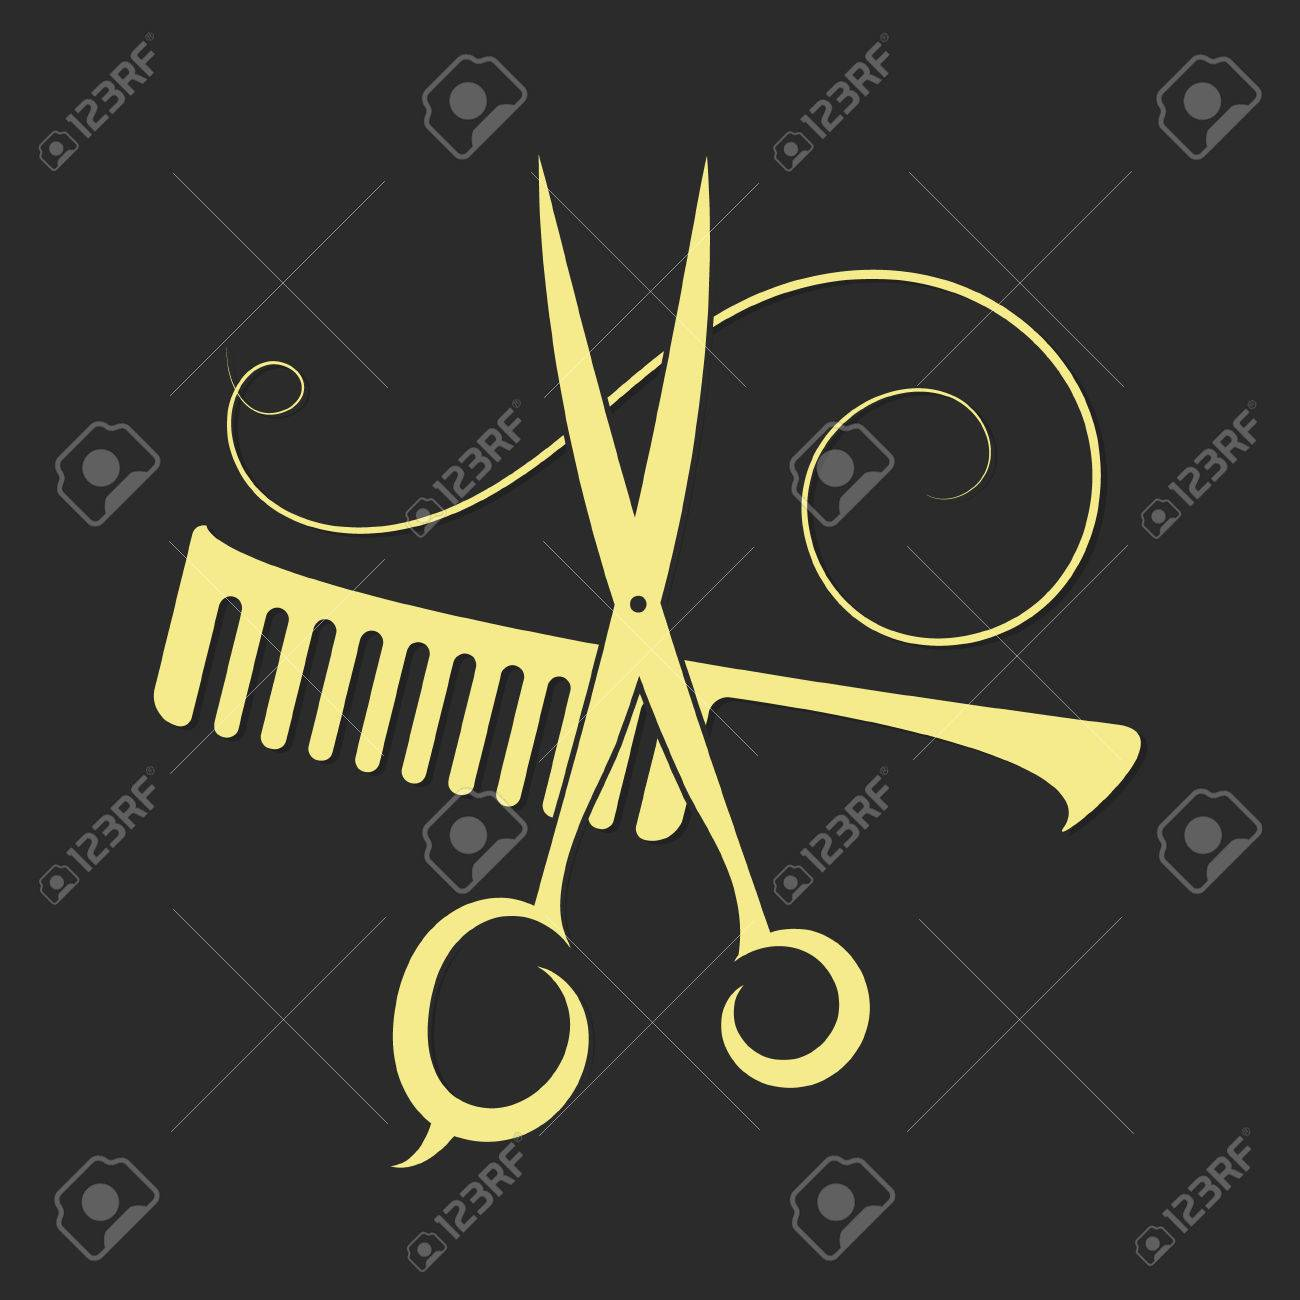 29 726 comb stock vector illustration and royalty free comb clipart